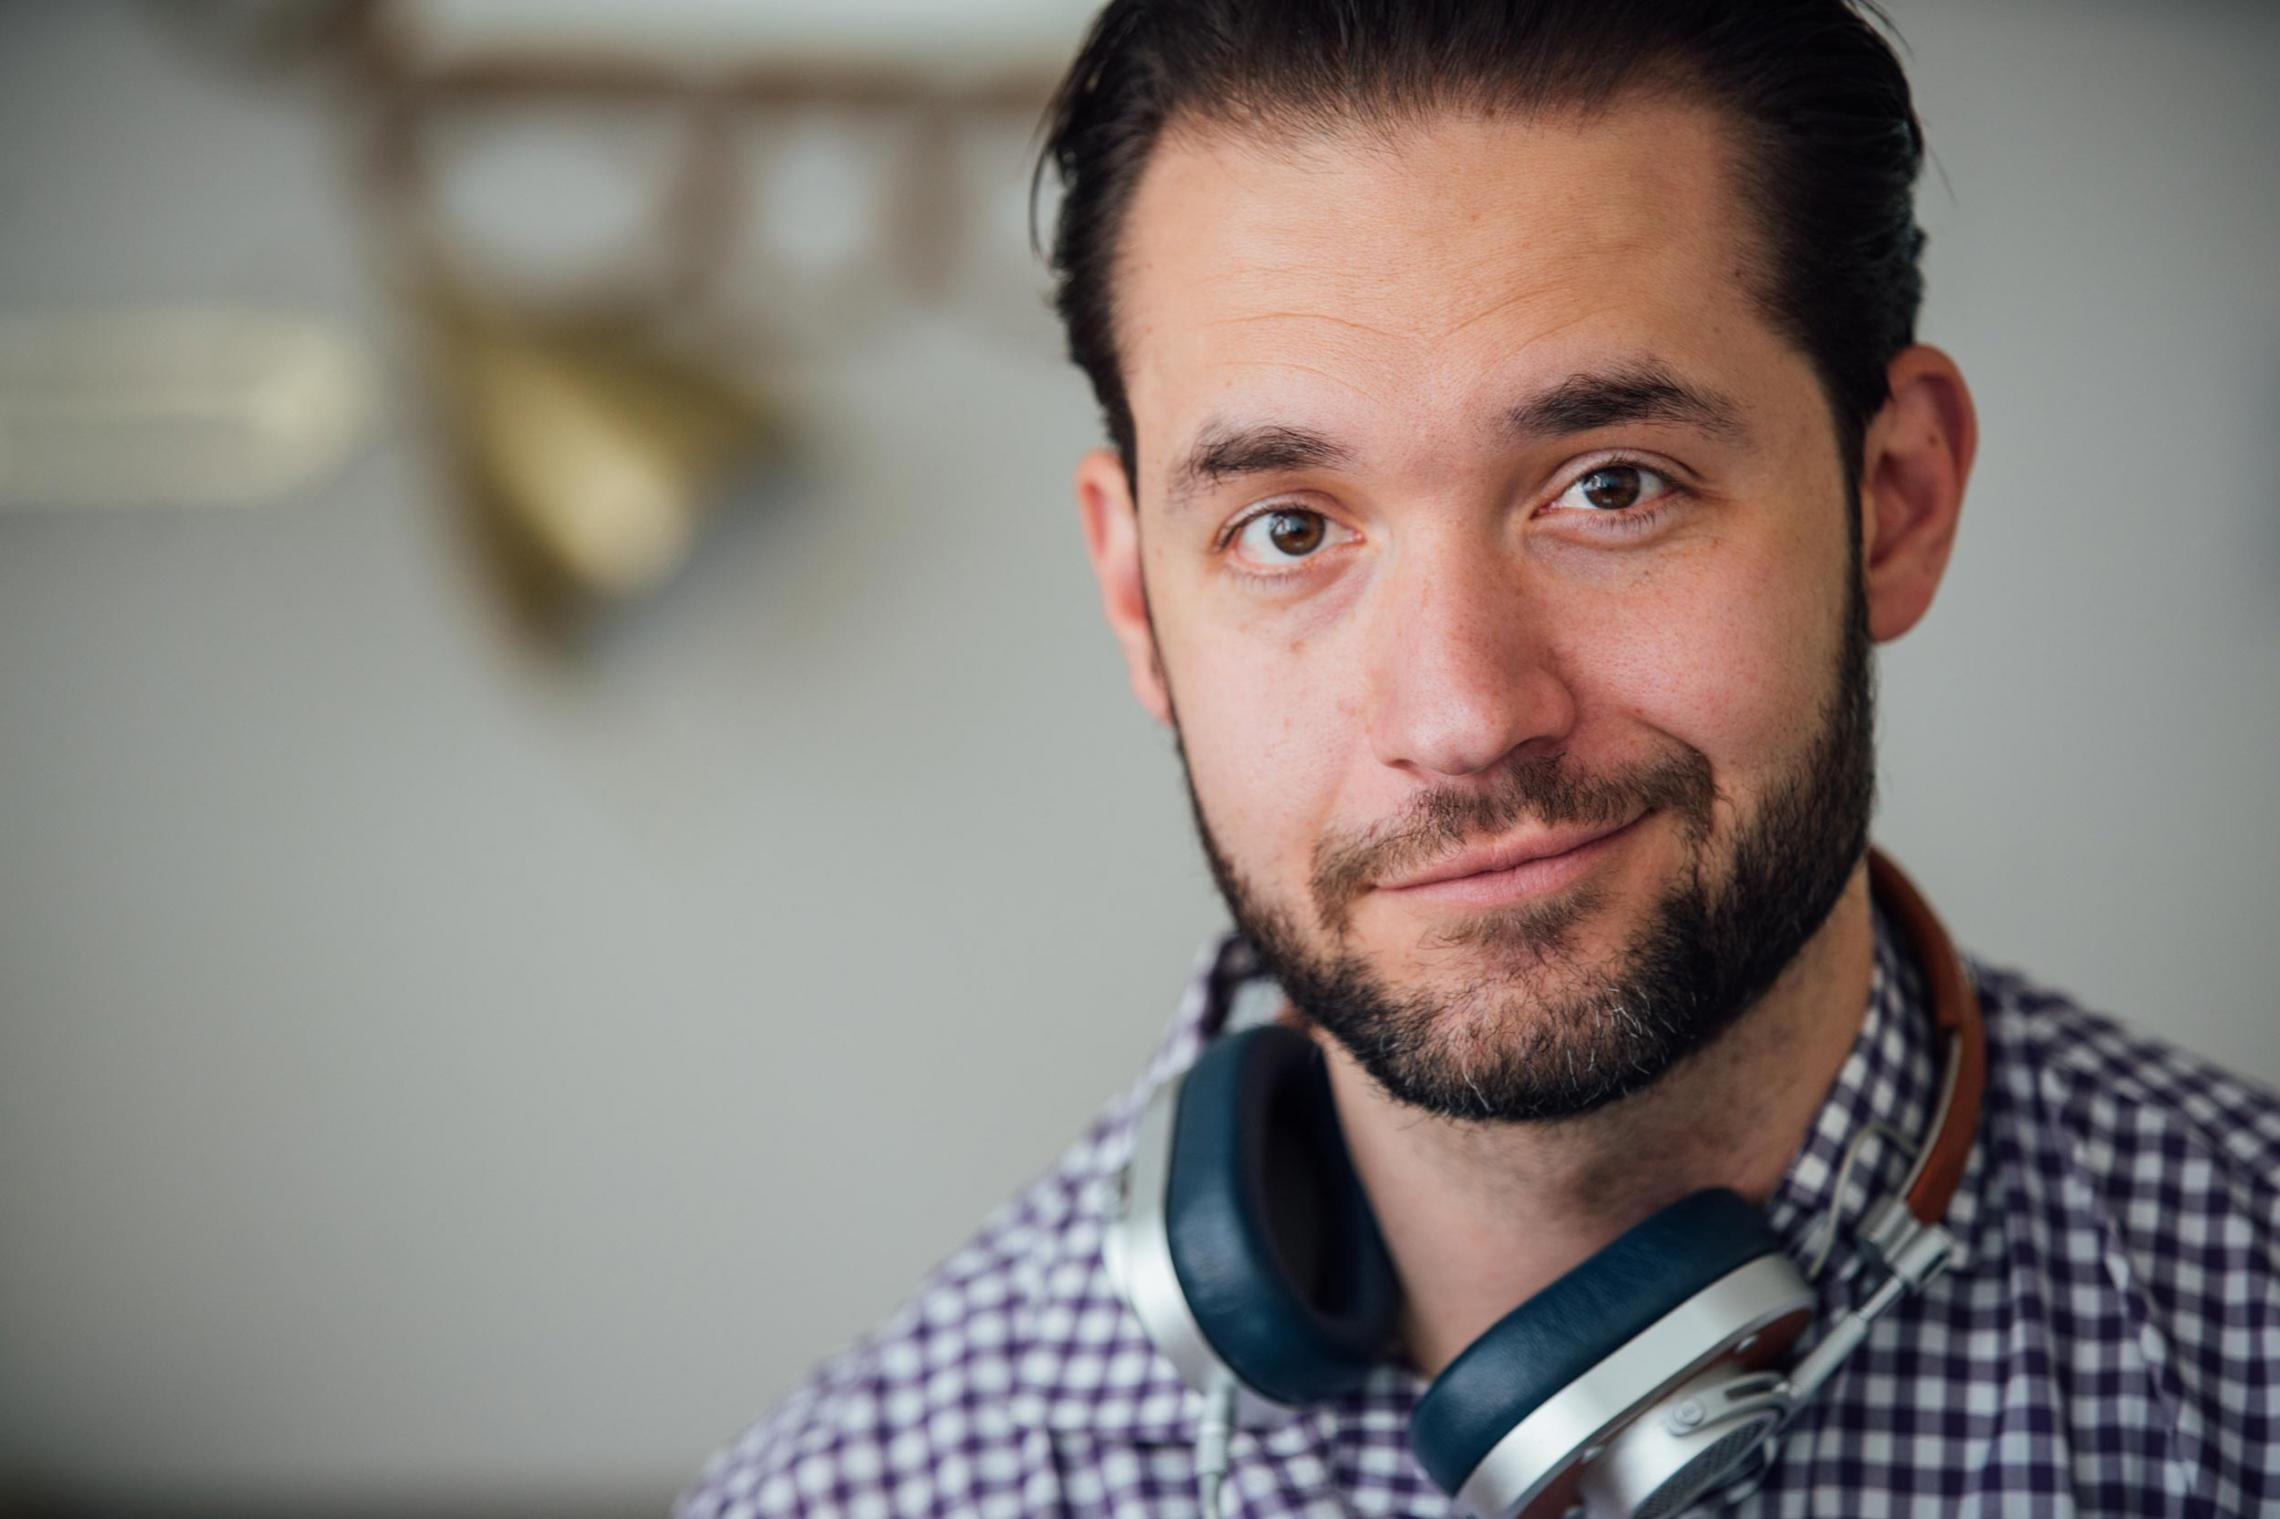 Alexis Ohanian graduated from the University of Virginia in 2005, the same year he co-founded Reddit.